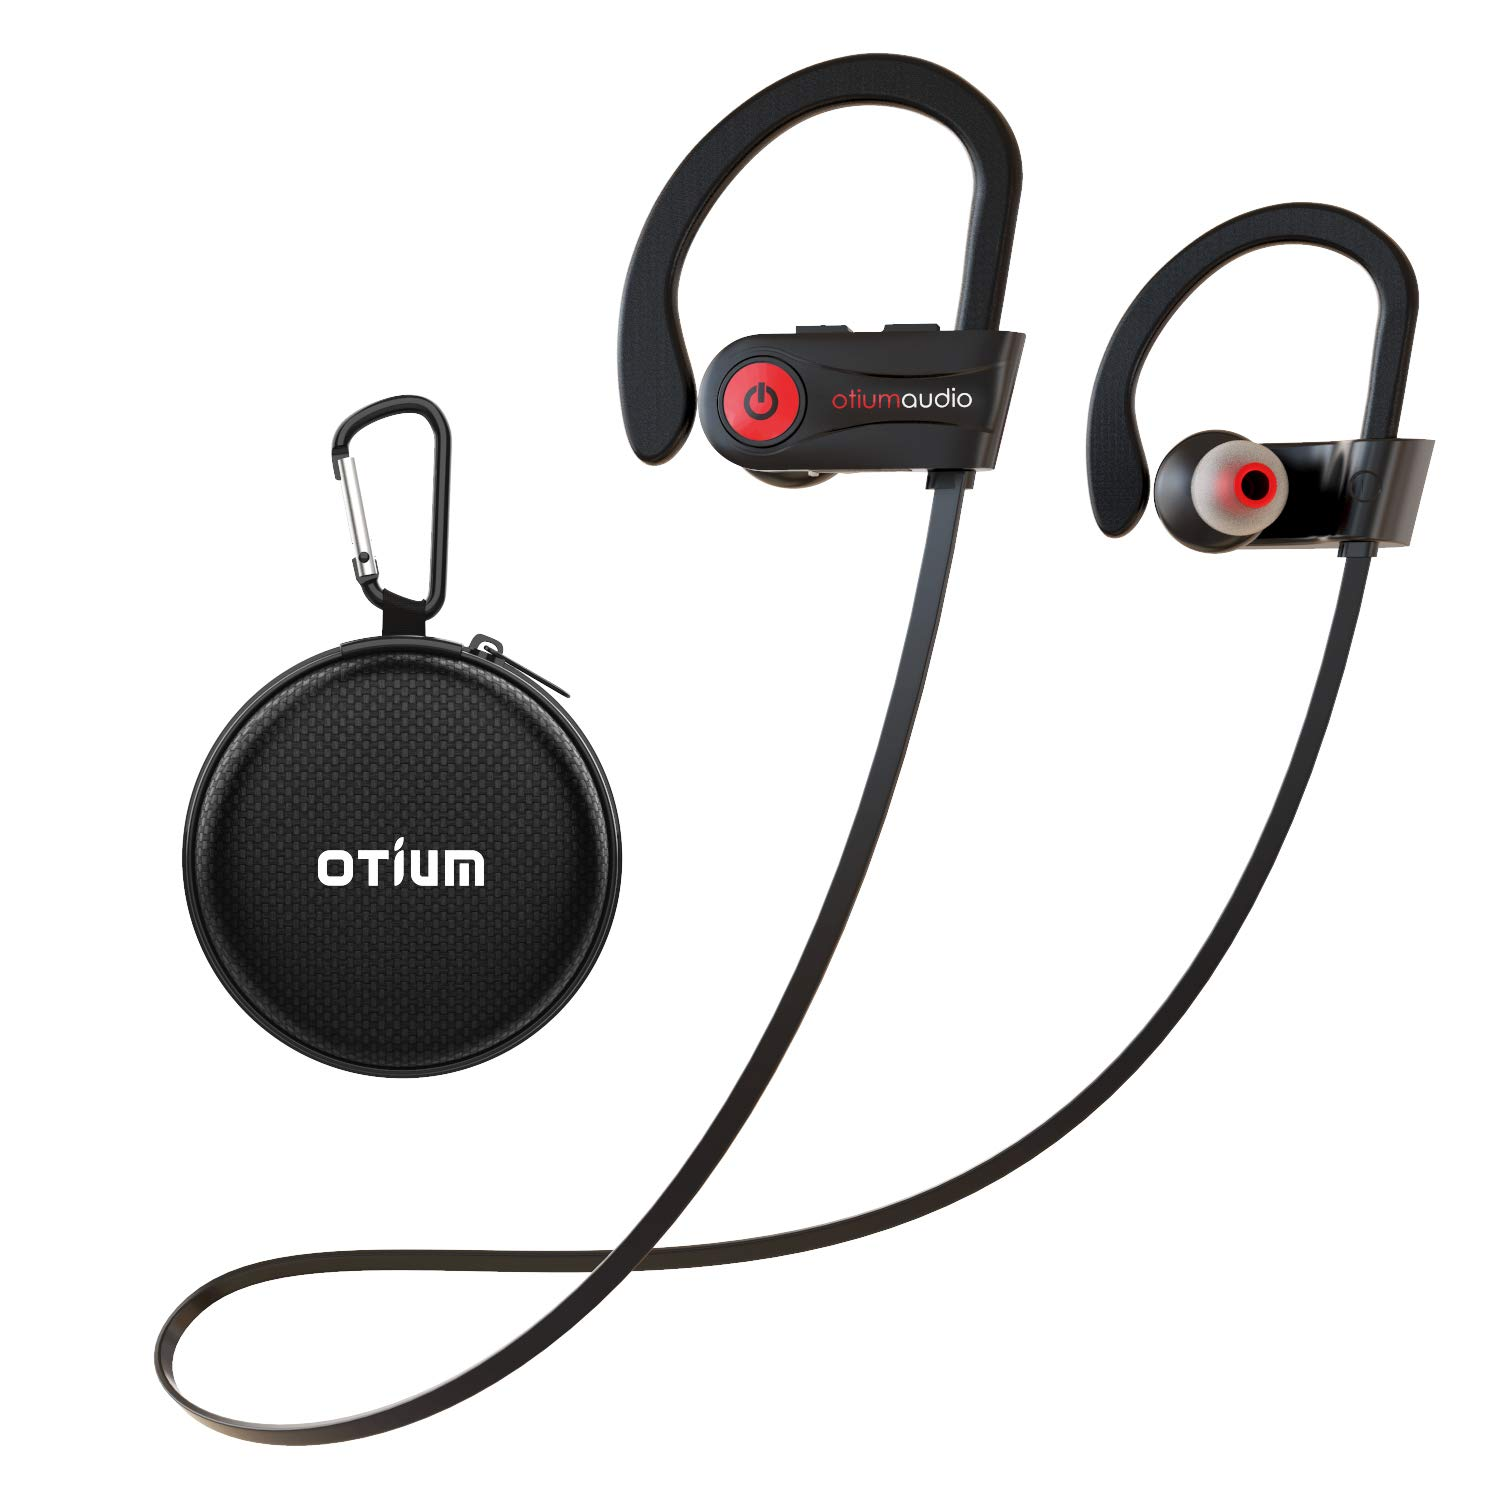 Otium Wireless Headphones, Bluetooth Headphones, Best Sports Earbuds, IPX7 Waterproof Stereo Earphones for Gym Running 9 Hours Playtime Noise Cancelling Headsets by Otium